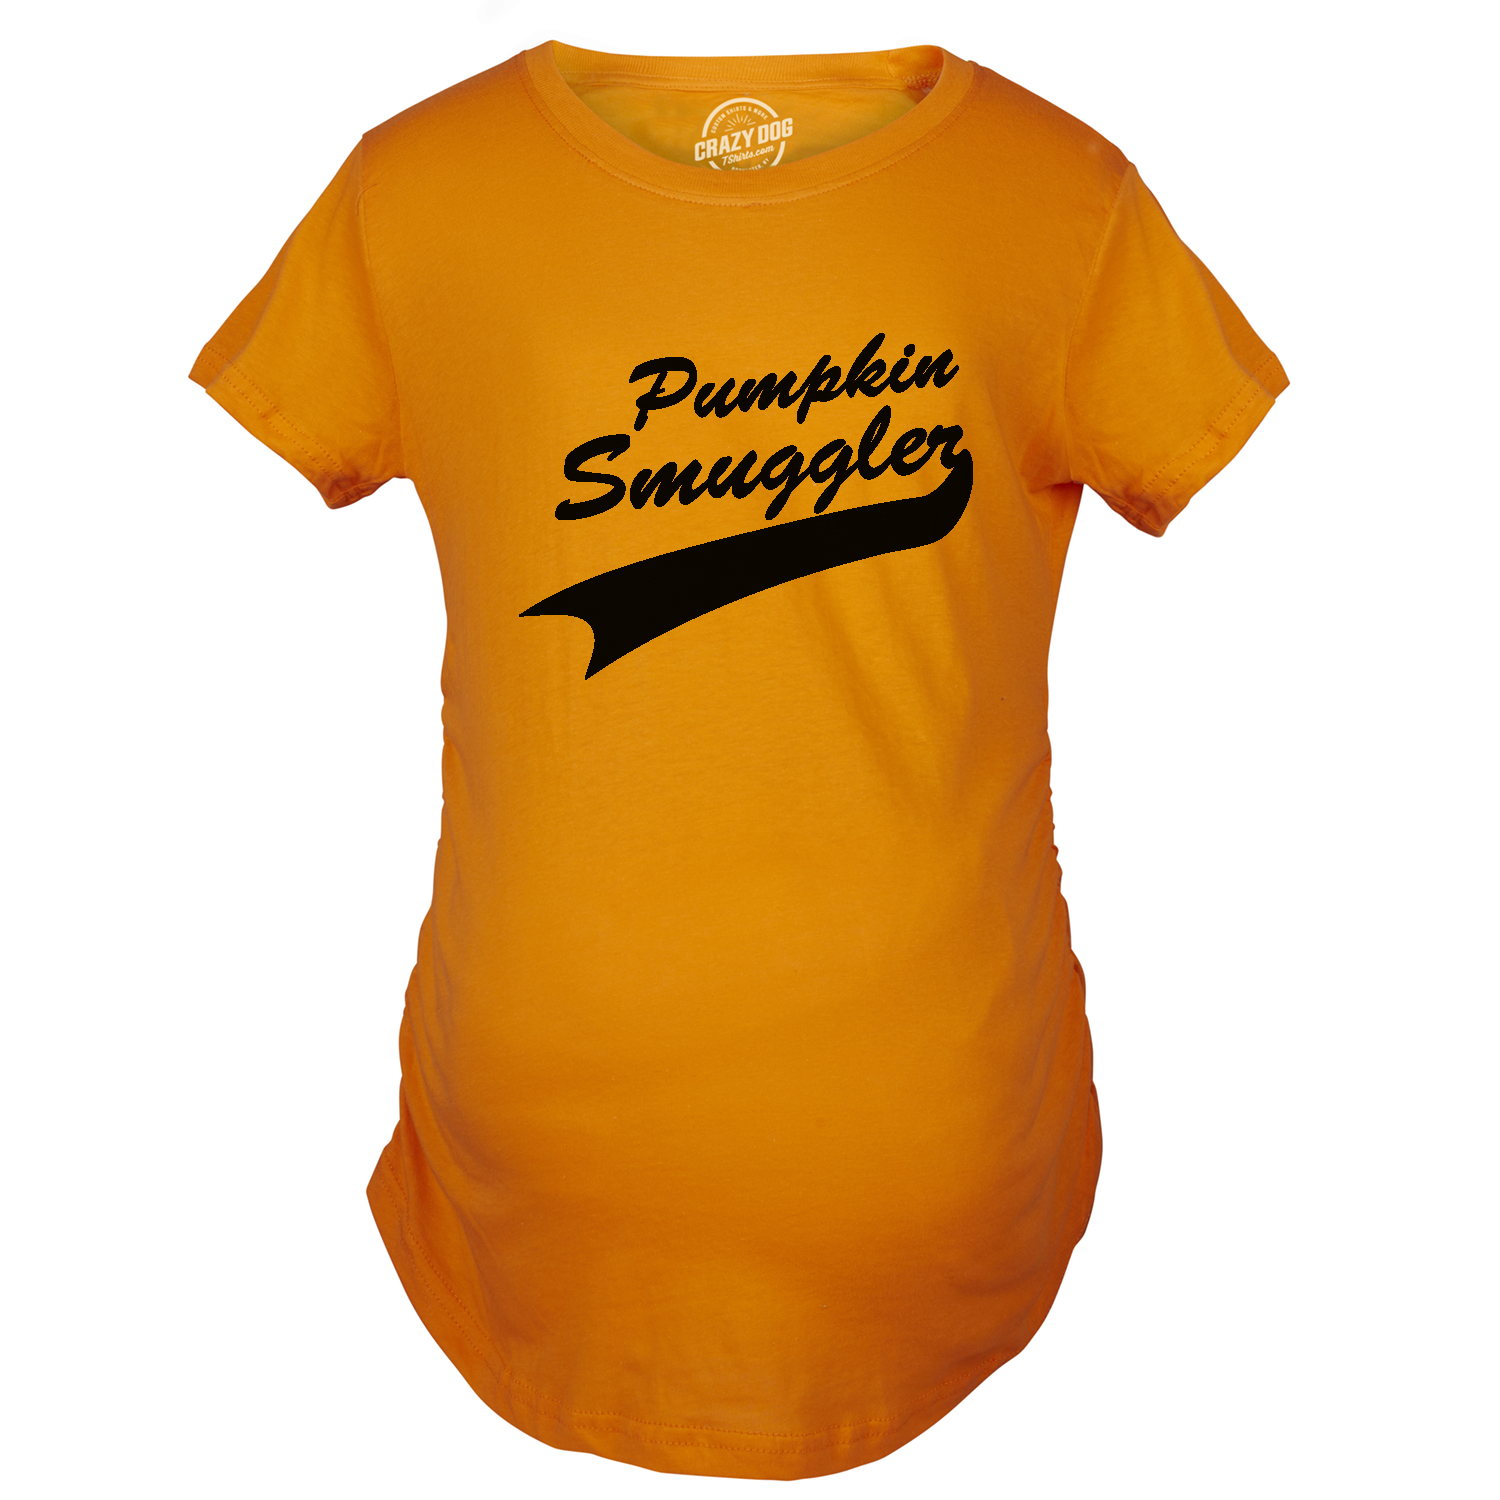 6d6b39f36145e Womens Pumpkin Smuggler Orange Halloween Maternity Funny Pregnancy T Shirt  (orange) S